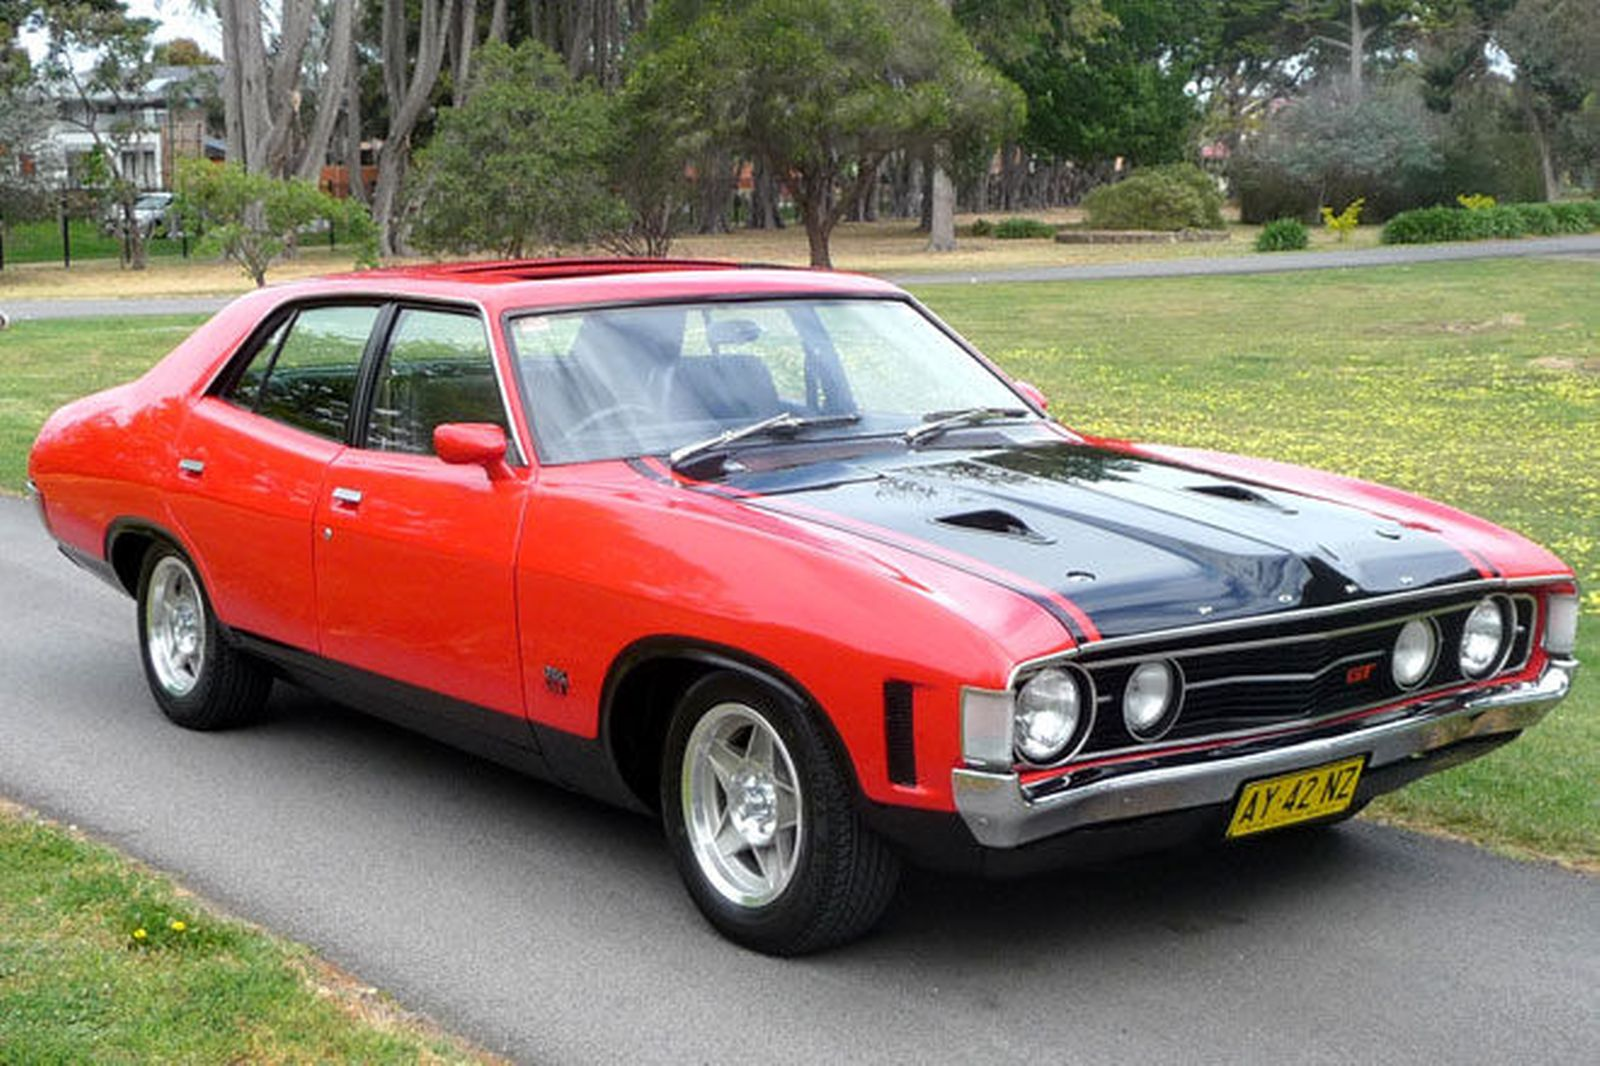 XA GT 351 Lot 6 HO 4 T Aussie Muscle Cars Falcons And also Showthread also Spoilers   horn cars additionally Ford Falcon Xb Gallery besides 1 18 Polar White Cosmic Blue 1974 Xa Falcon Superb. on ford falcon xa superbird